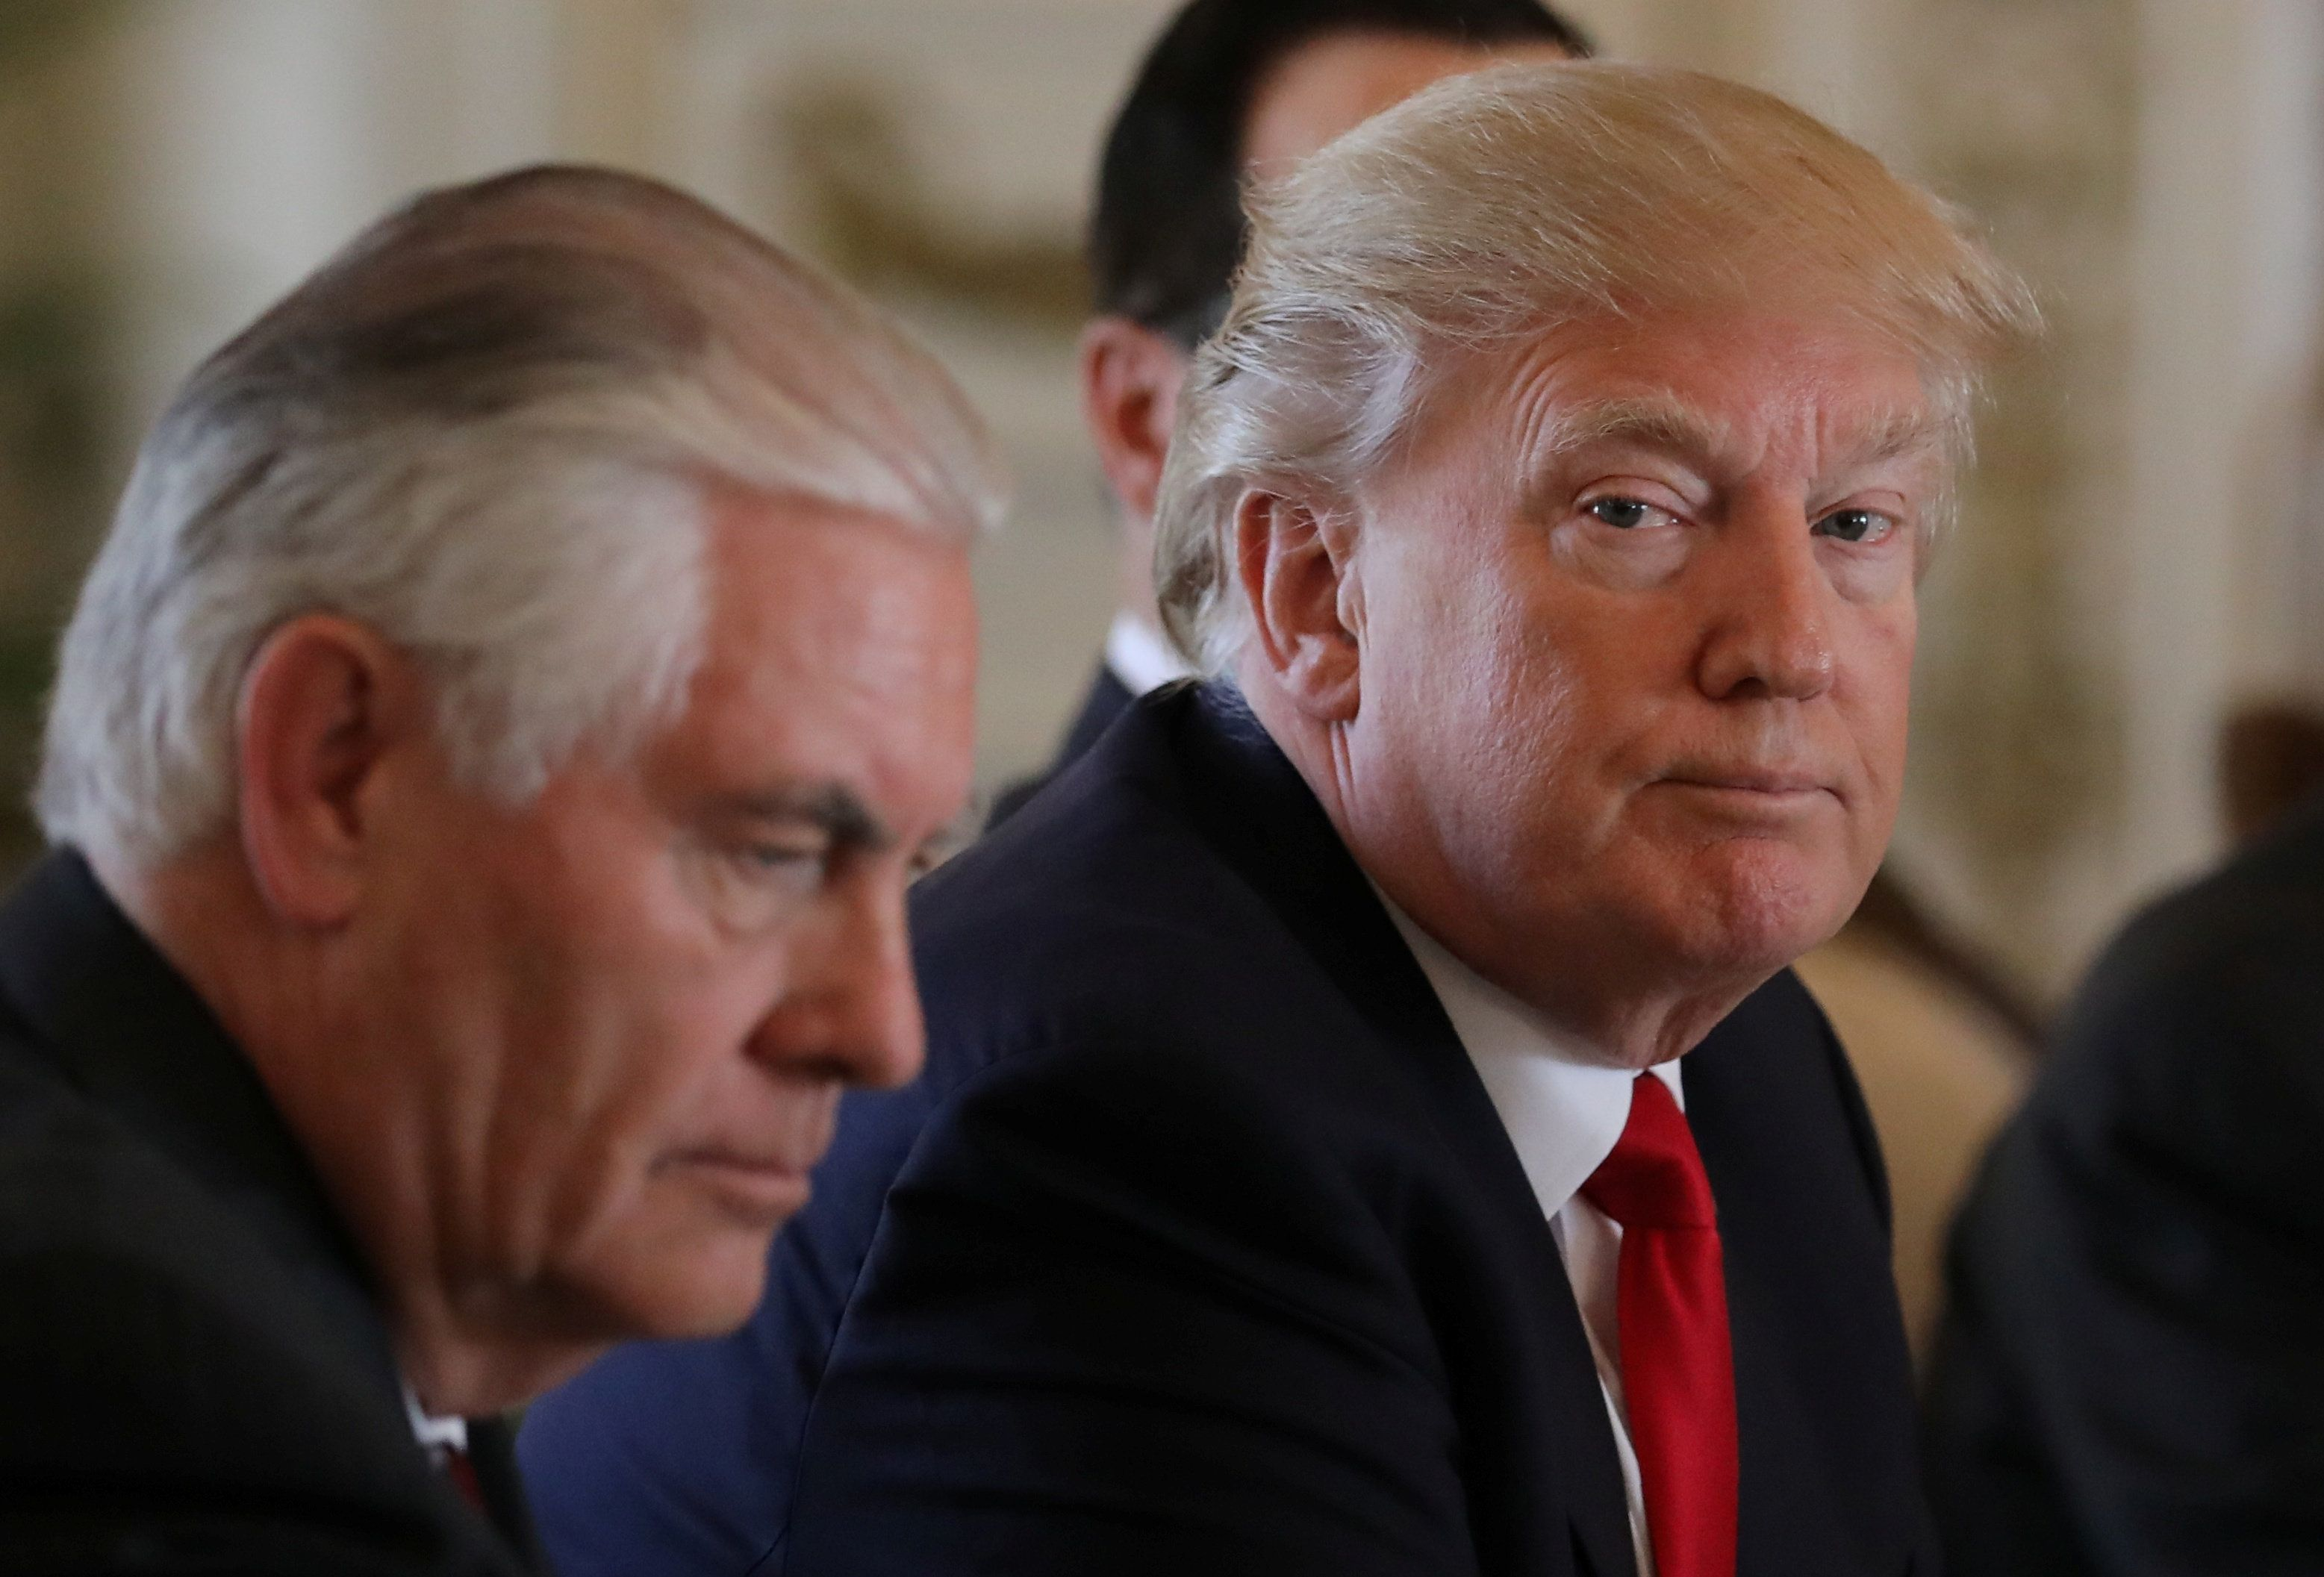 U.S. President Donald Trump (R) sits next to Secretary of State Rex Tillerson during a bilateral meeting with China's President Xi Jinping (Not Pictured) at Trump's Mar-a-Lago estate in Palm Beach, Florida, U.S., April 7, 2017.   REUTERS/Carlos barria